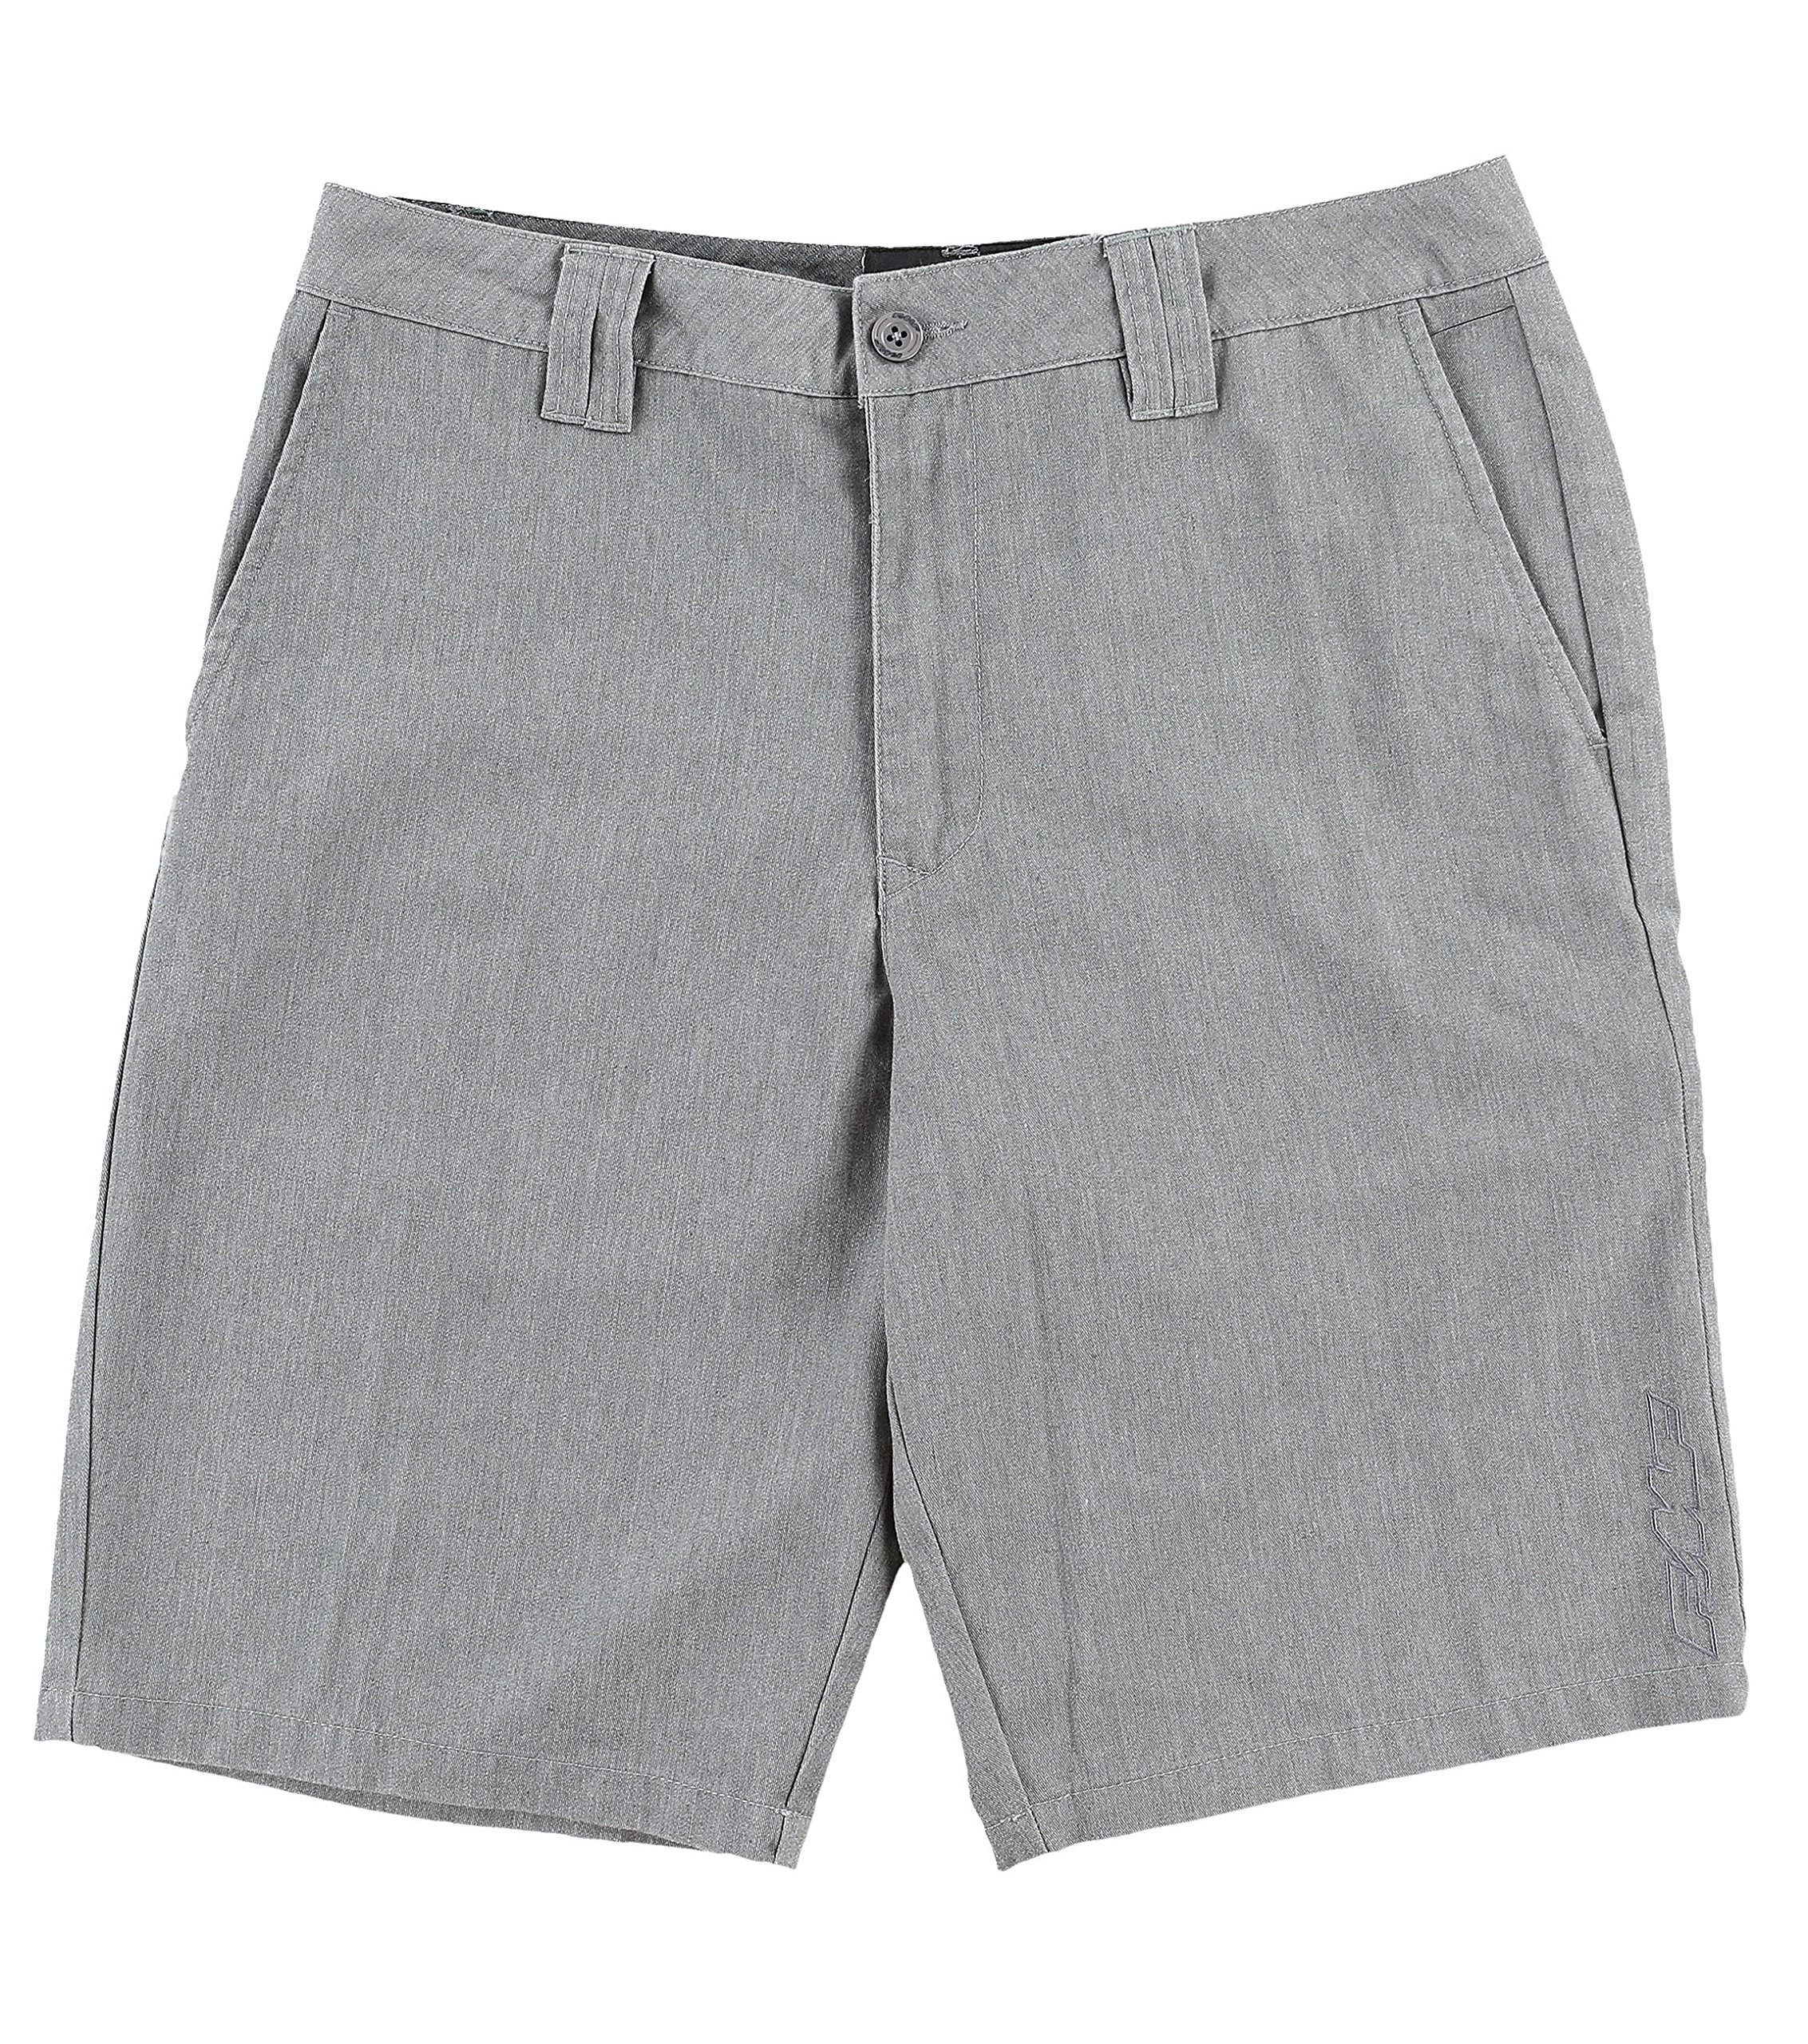 FMF All Time Shorts (28) (HEATHER GREY)